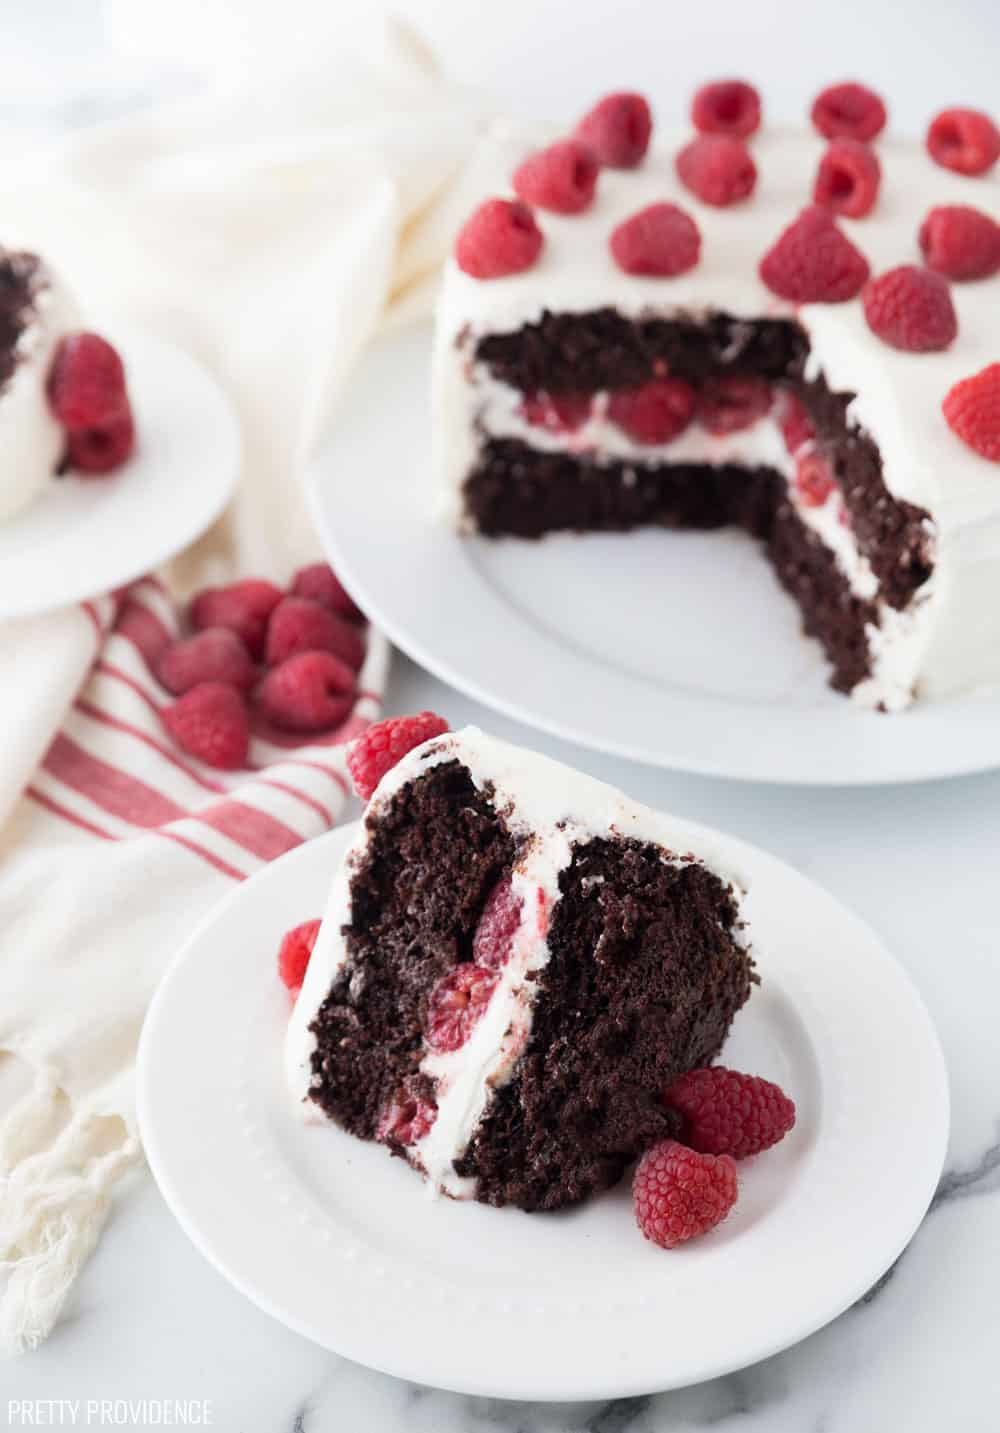 Chocolate cake with raspberries and cream cheese frosting, one slice on a cake plate with the rest of the cake in the background.